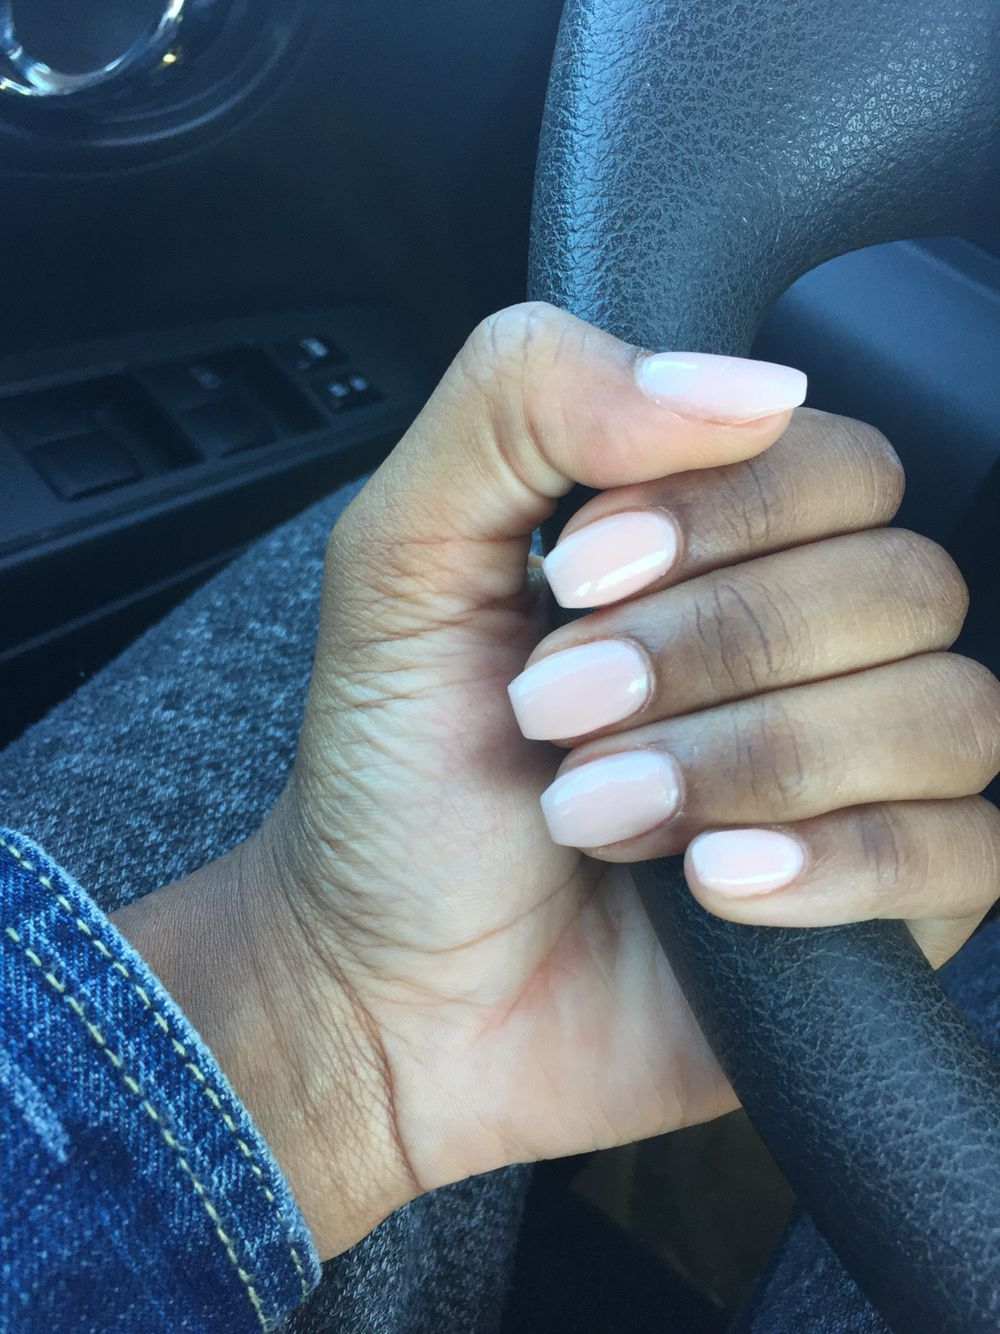 Perfect Length And Shape I Love These Short Acrylic Nails Coffin Shape Nails Acrylic Nails Coffin